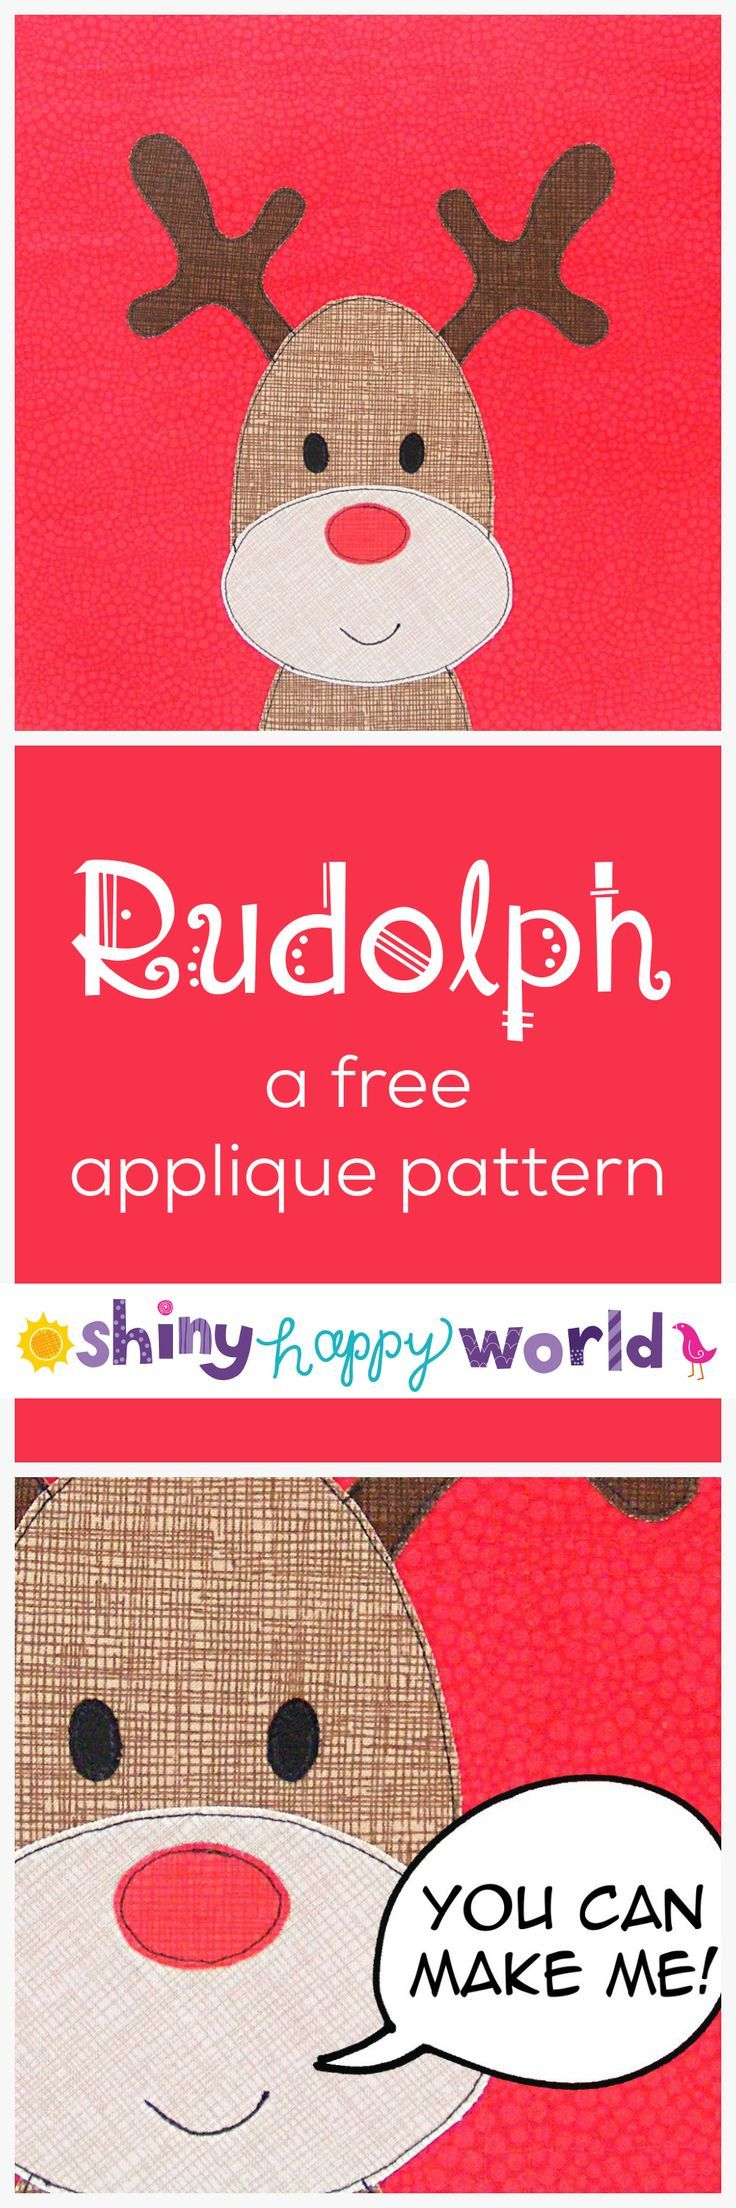 Rudolph the Red-Nosed Reindeer - a free applique pattern from Shiny Happy World when you sign up to the email newsletter.